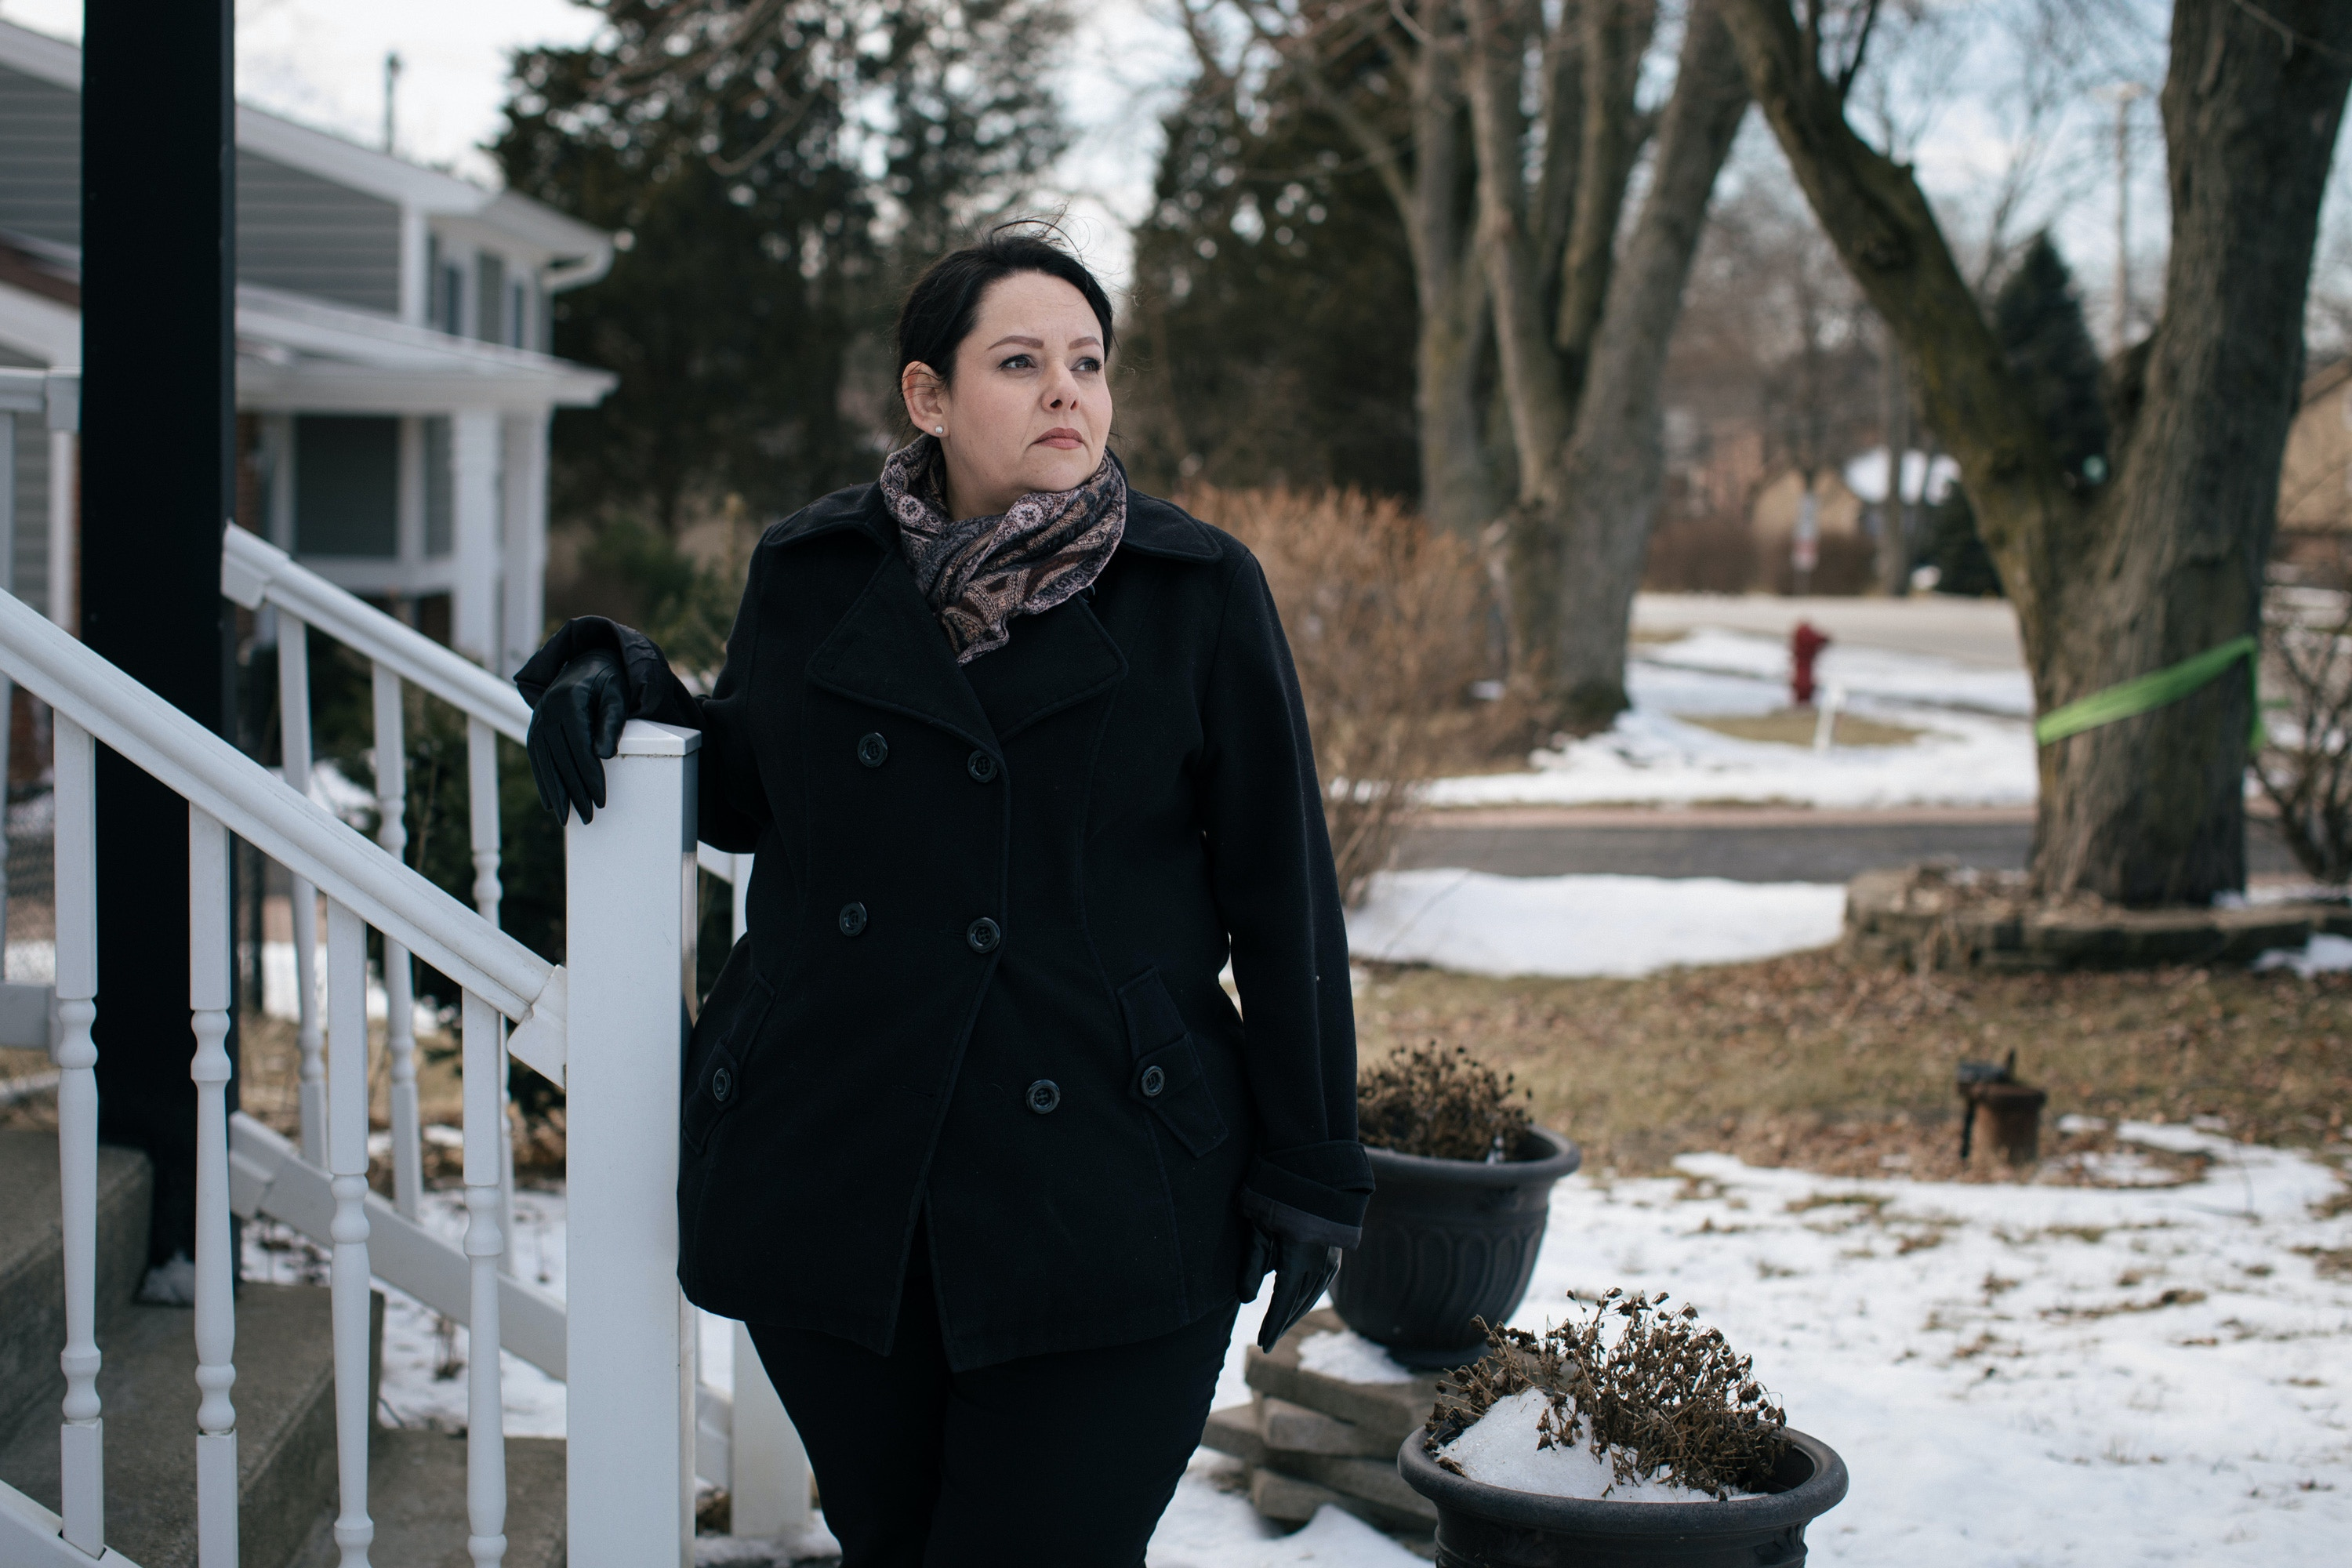 Willowbrook, Illinois -- Thursday, February 22, 2019. Gabriela Tejeda-Rios, an immigration lawyer, poses for a portrait outside of her home in Willowbrook. The home, which Tejeda-Rios moved to in 2009, is 0.2 miles from the Sterigenics plant that has been emitting a carcinogenic chemical called ethylene oxide.